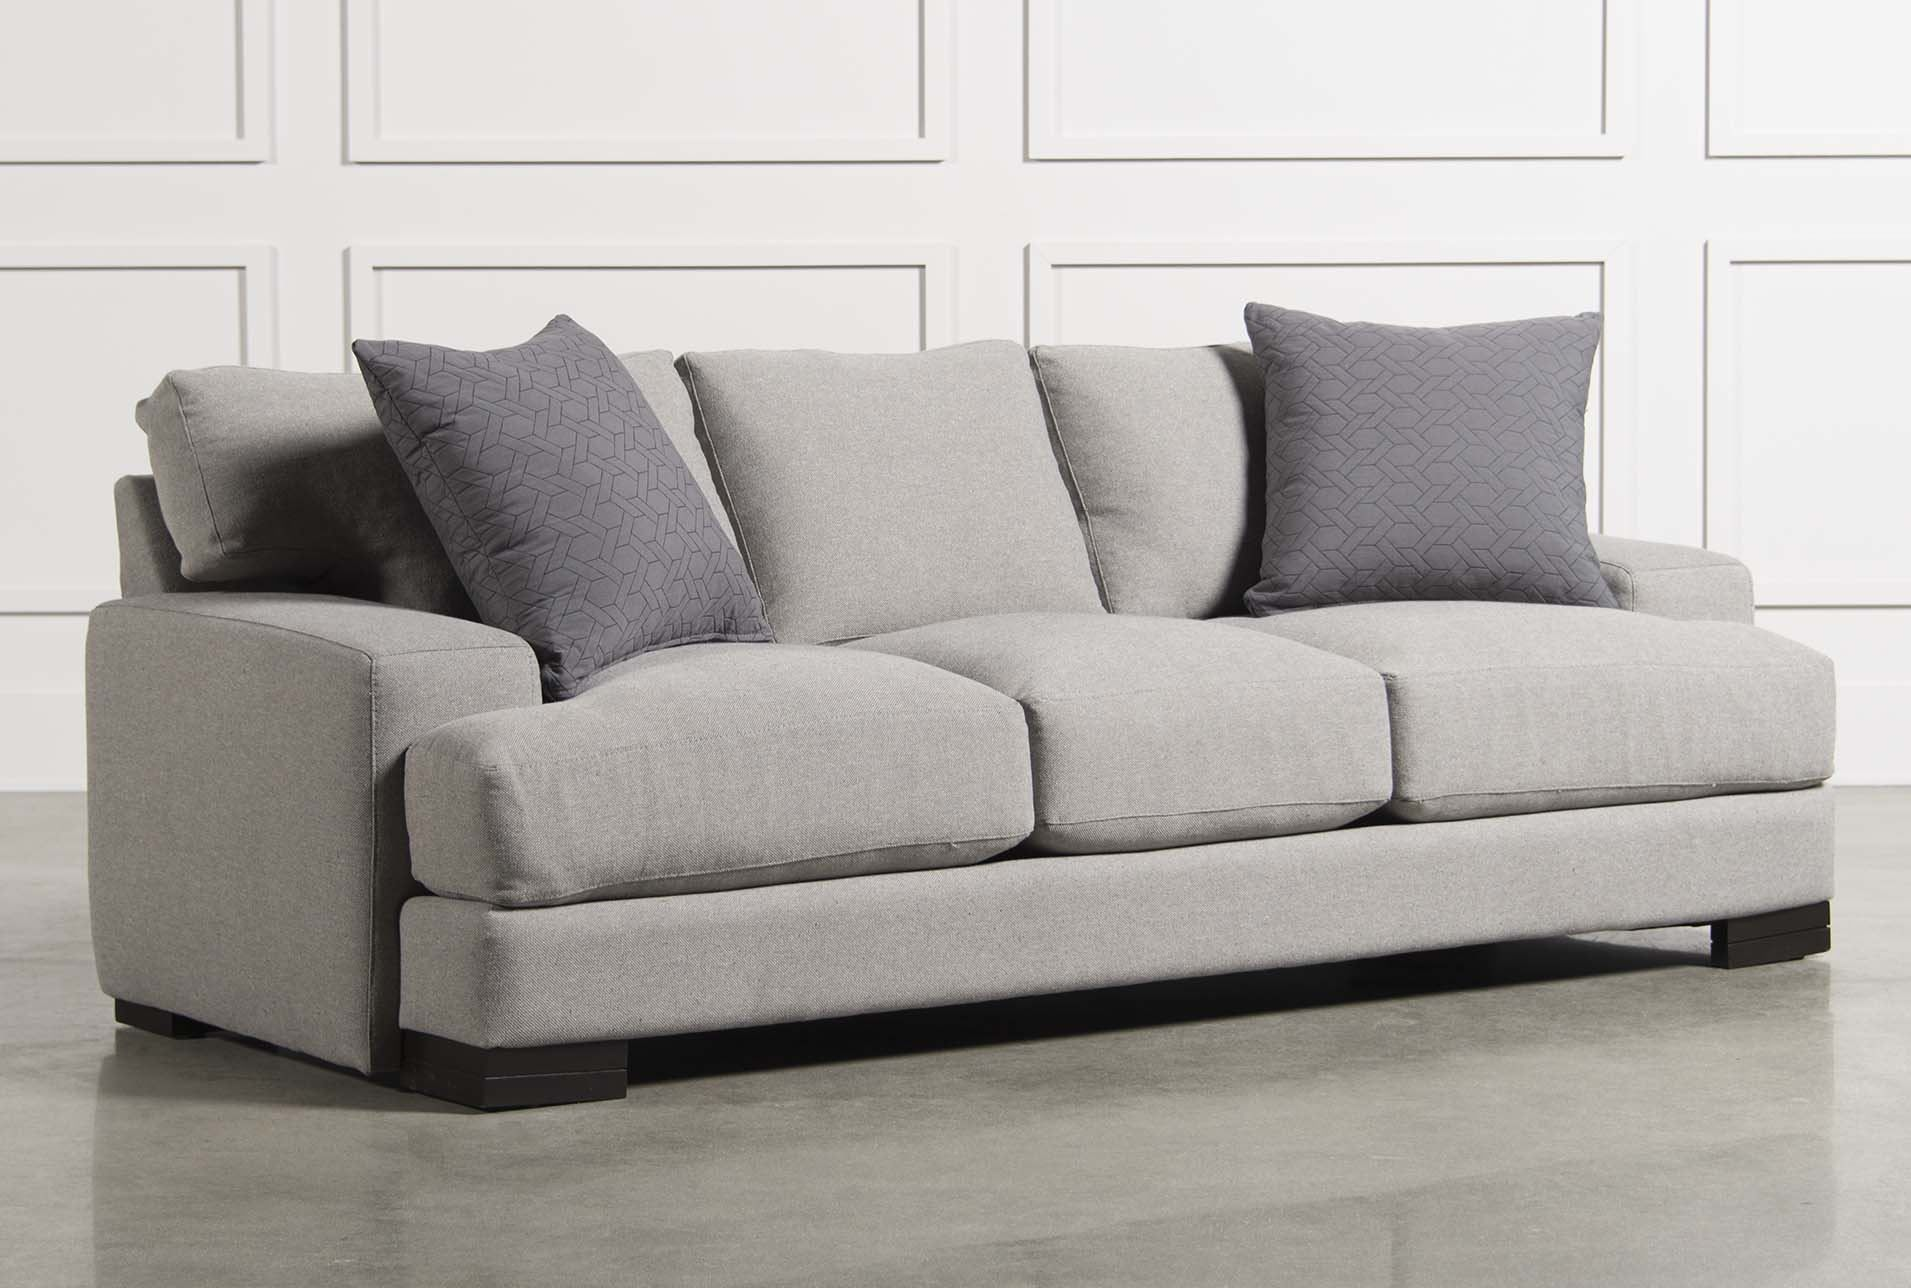 Living Spaces Couches In 2020 Living Spaces Couch Sofa